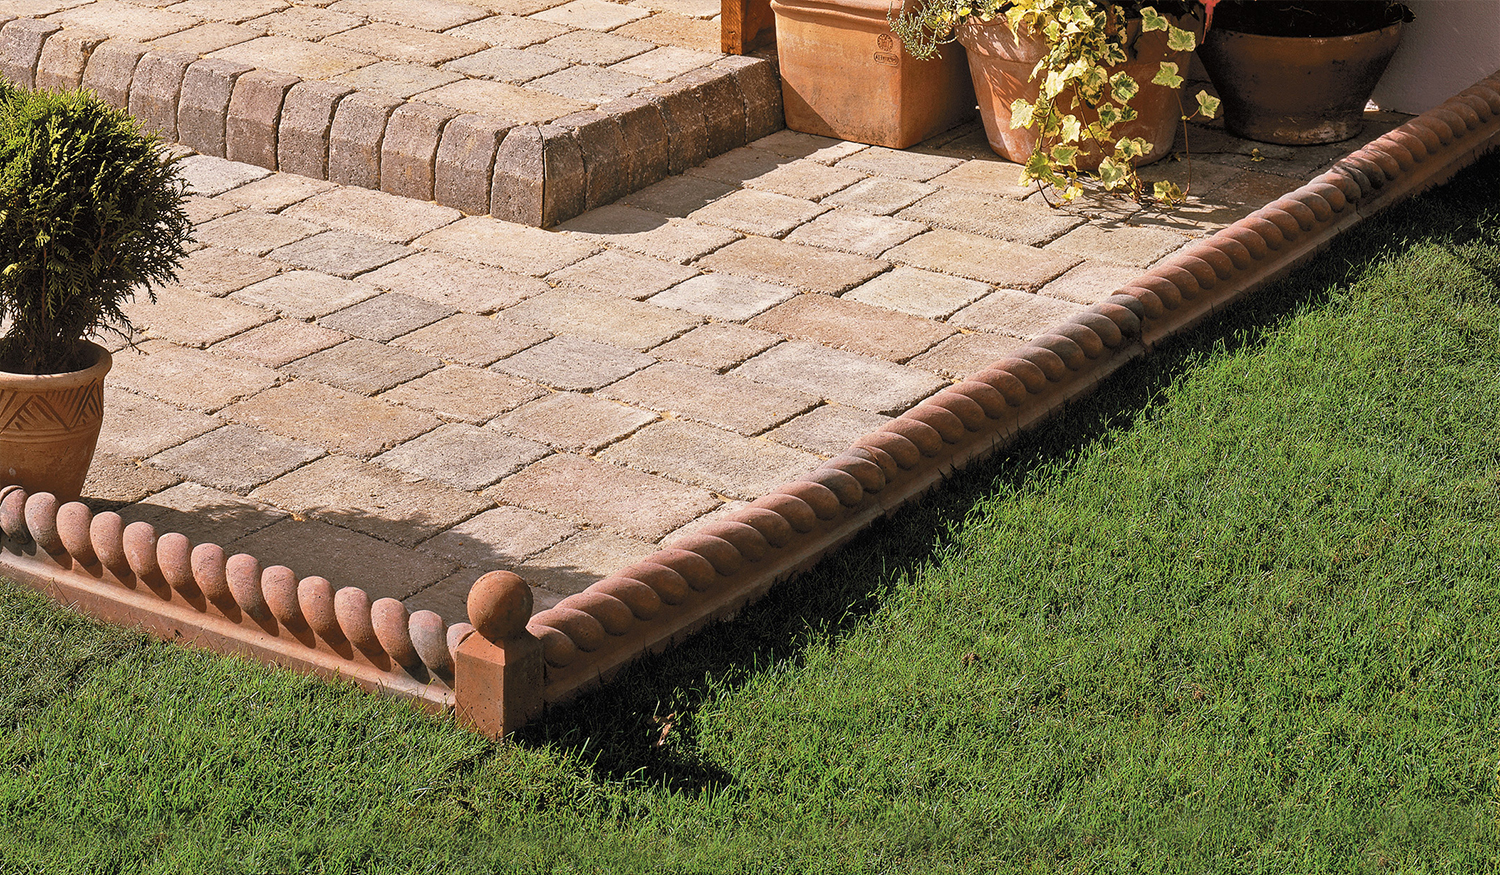 How to treat block paving with chemicals and acid